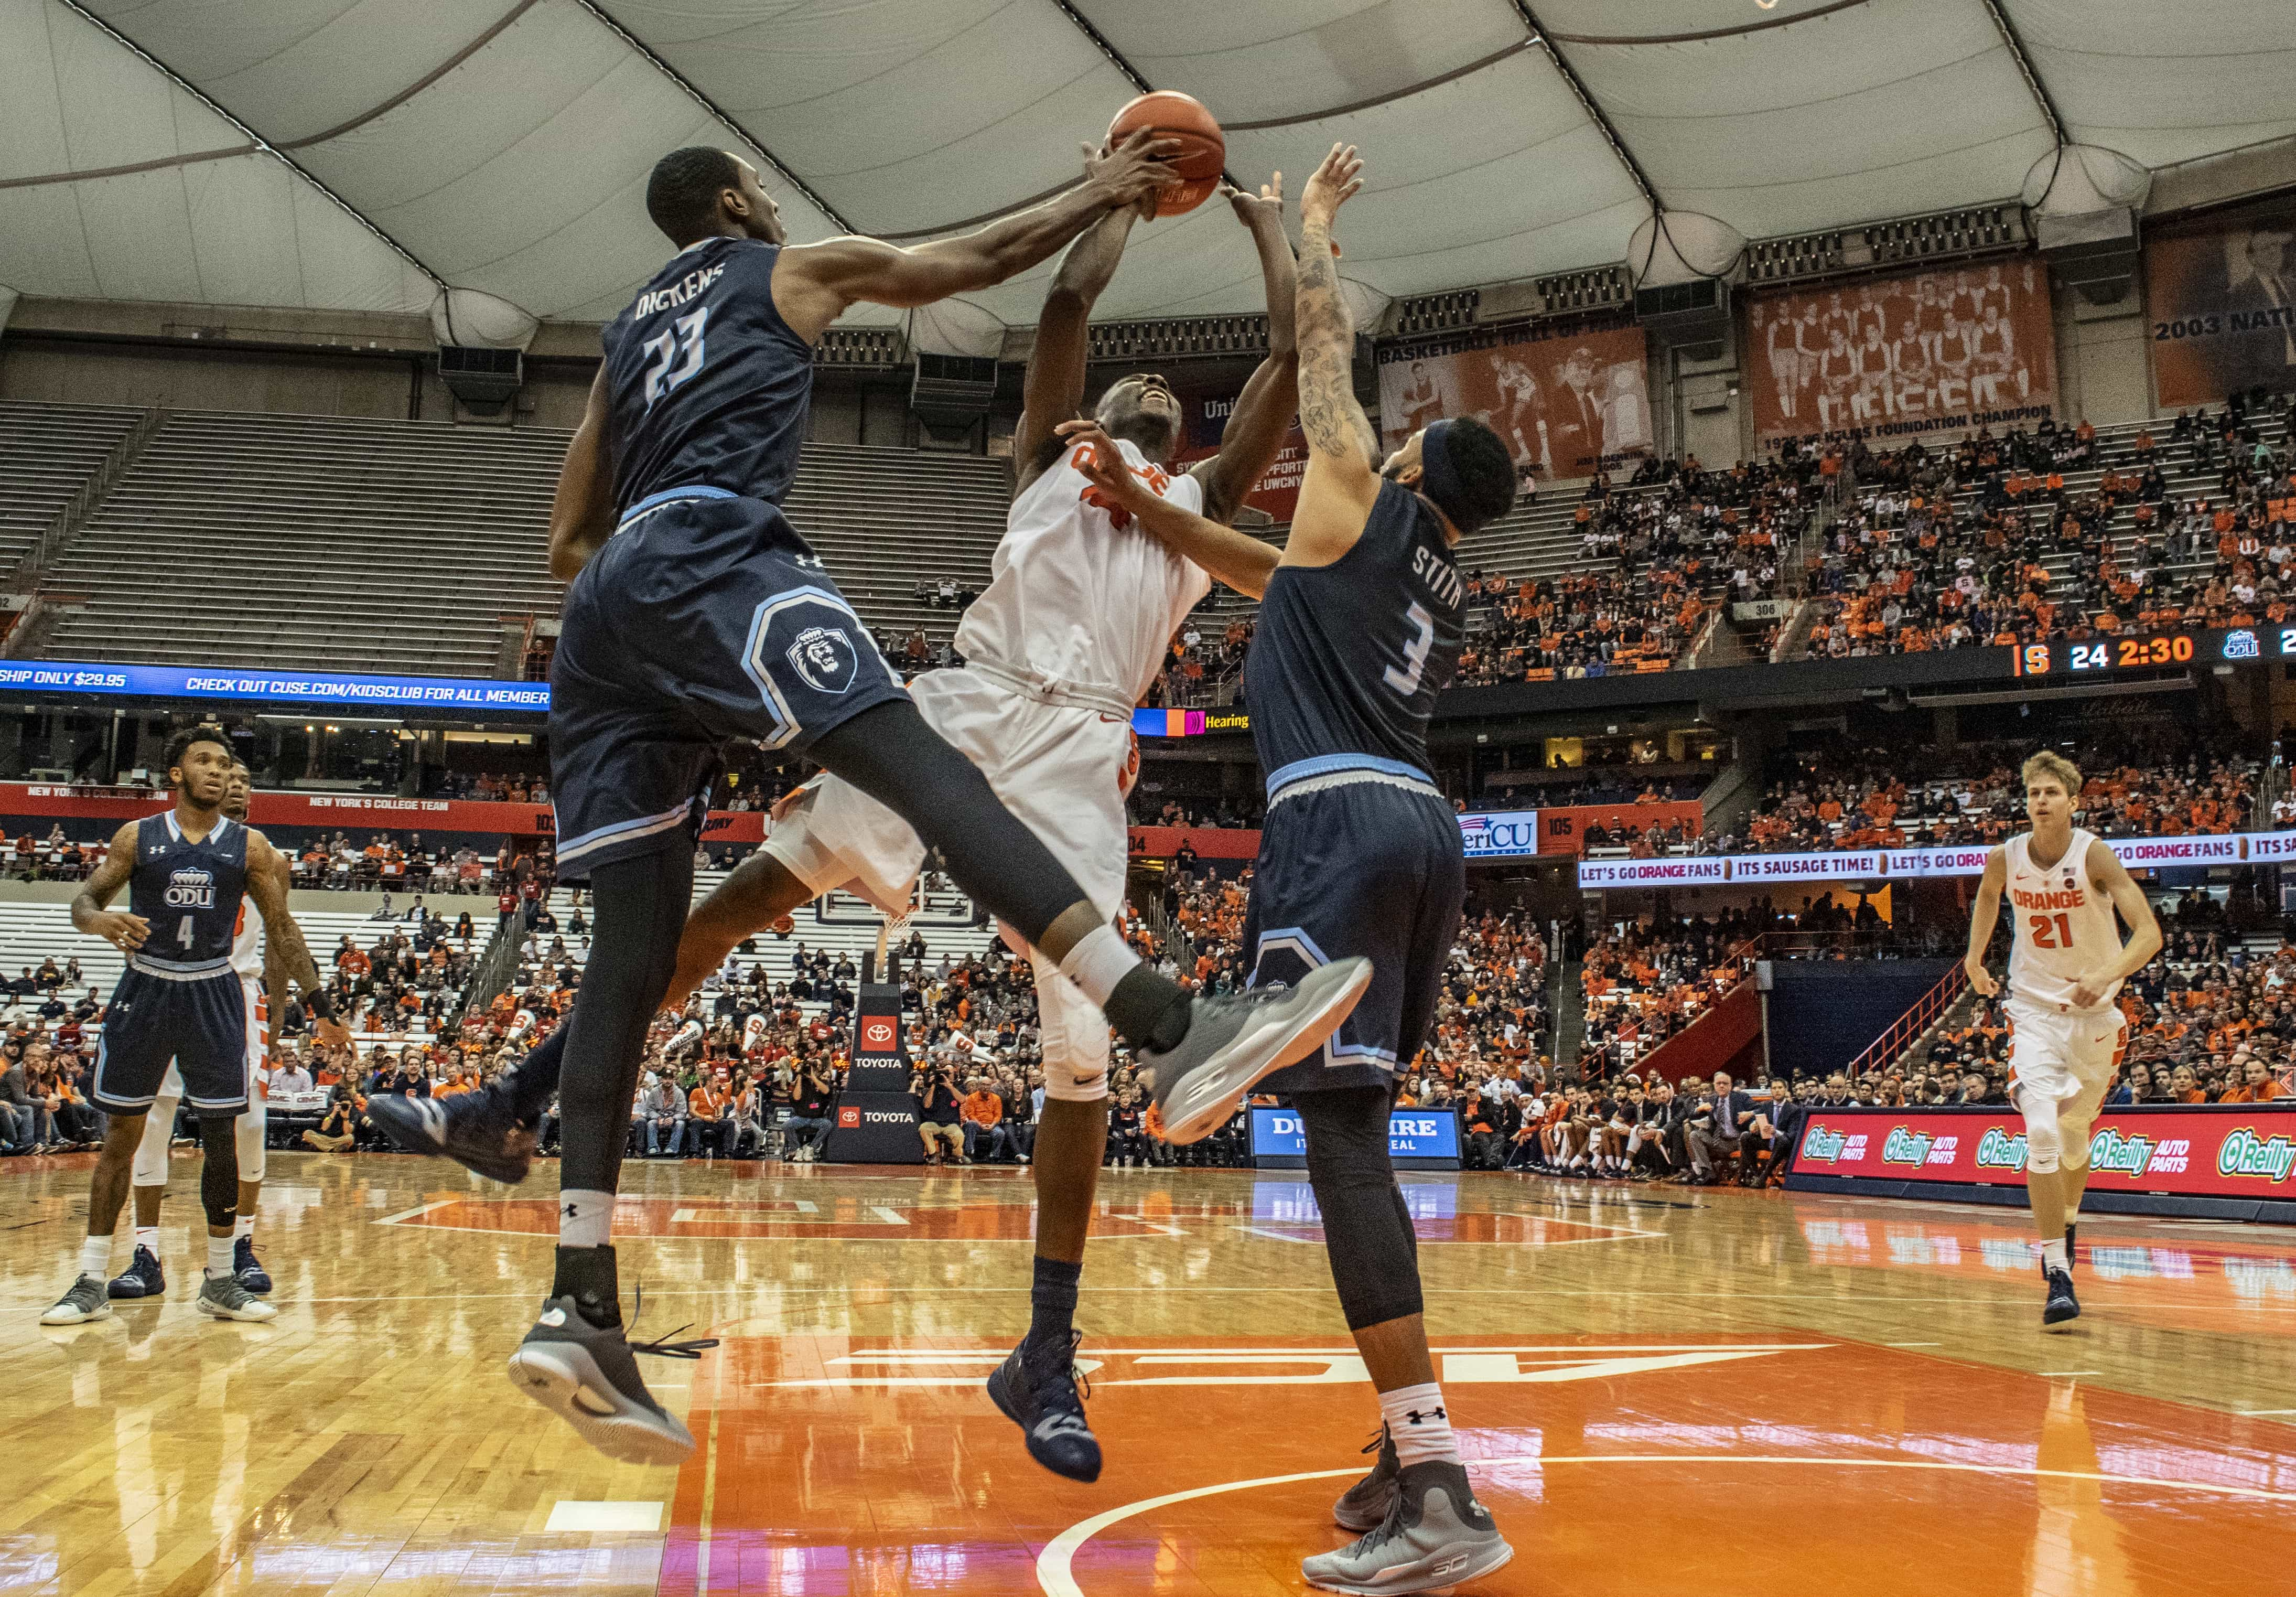 Bourama Sidibe gets blocked as he goes for up a shot during SU's loss to Old Dominion on Dec. 15, 2018, at the Carrier Dome. Sidibe ended the game without scoring.